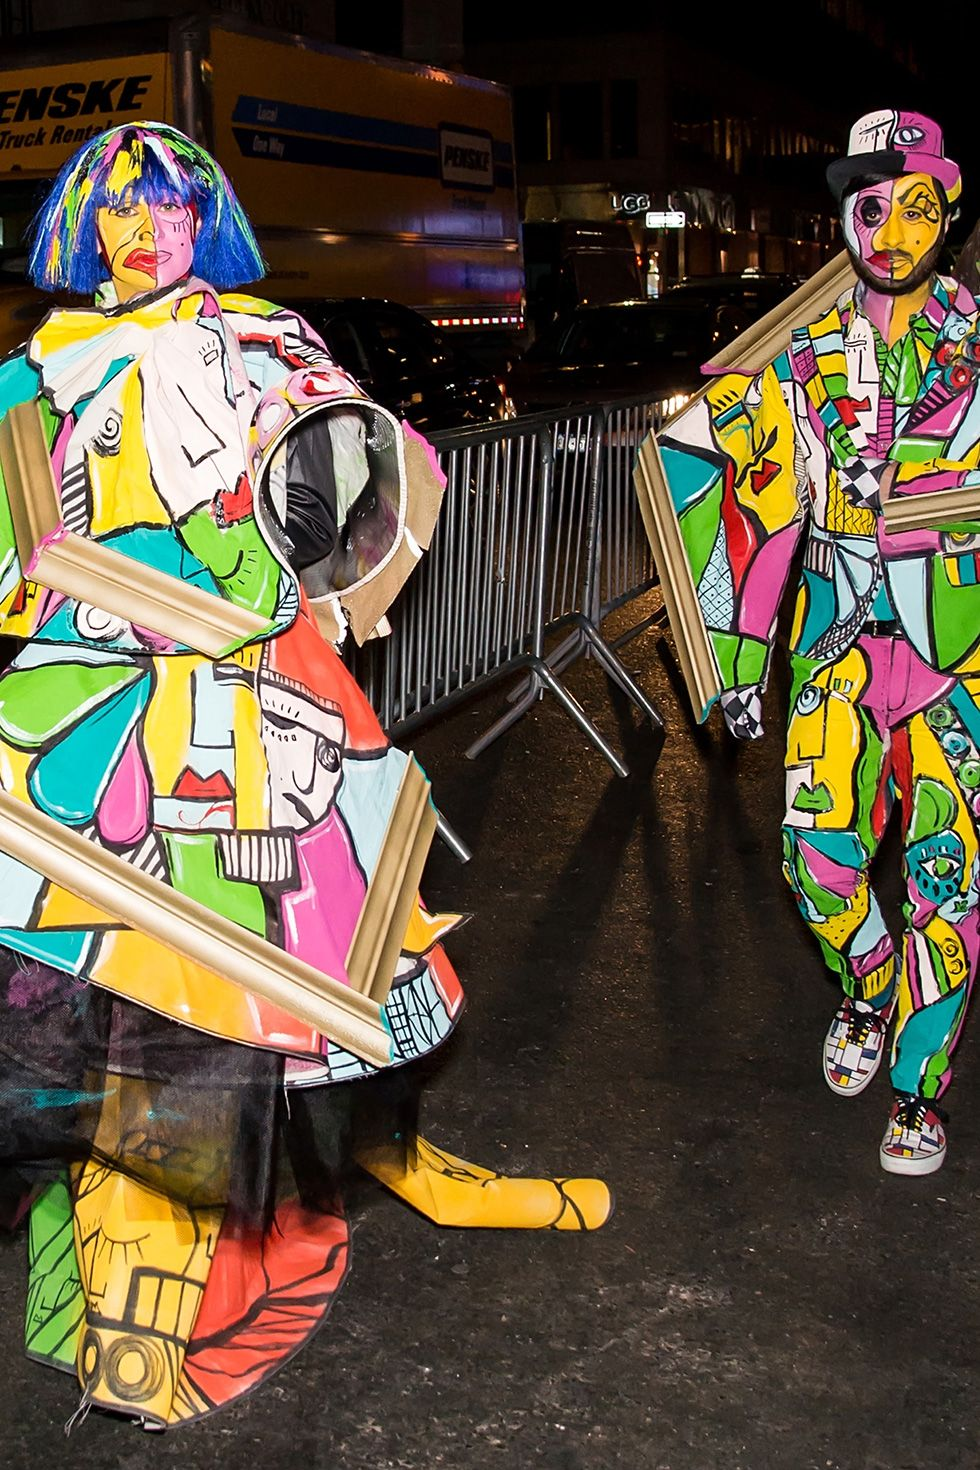 Christian Siriano and Brad Walsh - Picasso Paintings In 2015, fashion designer Christian Siriano and singer/music producer Brad Walsh arrived at Heidi Klum's Halloween party at LAVO in New York City dressed up as works of art—Picasso style.